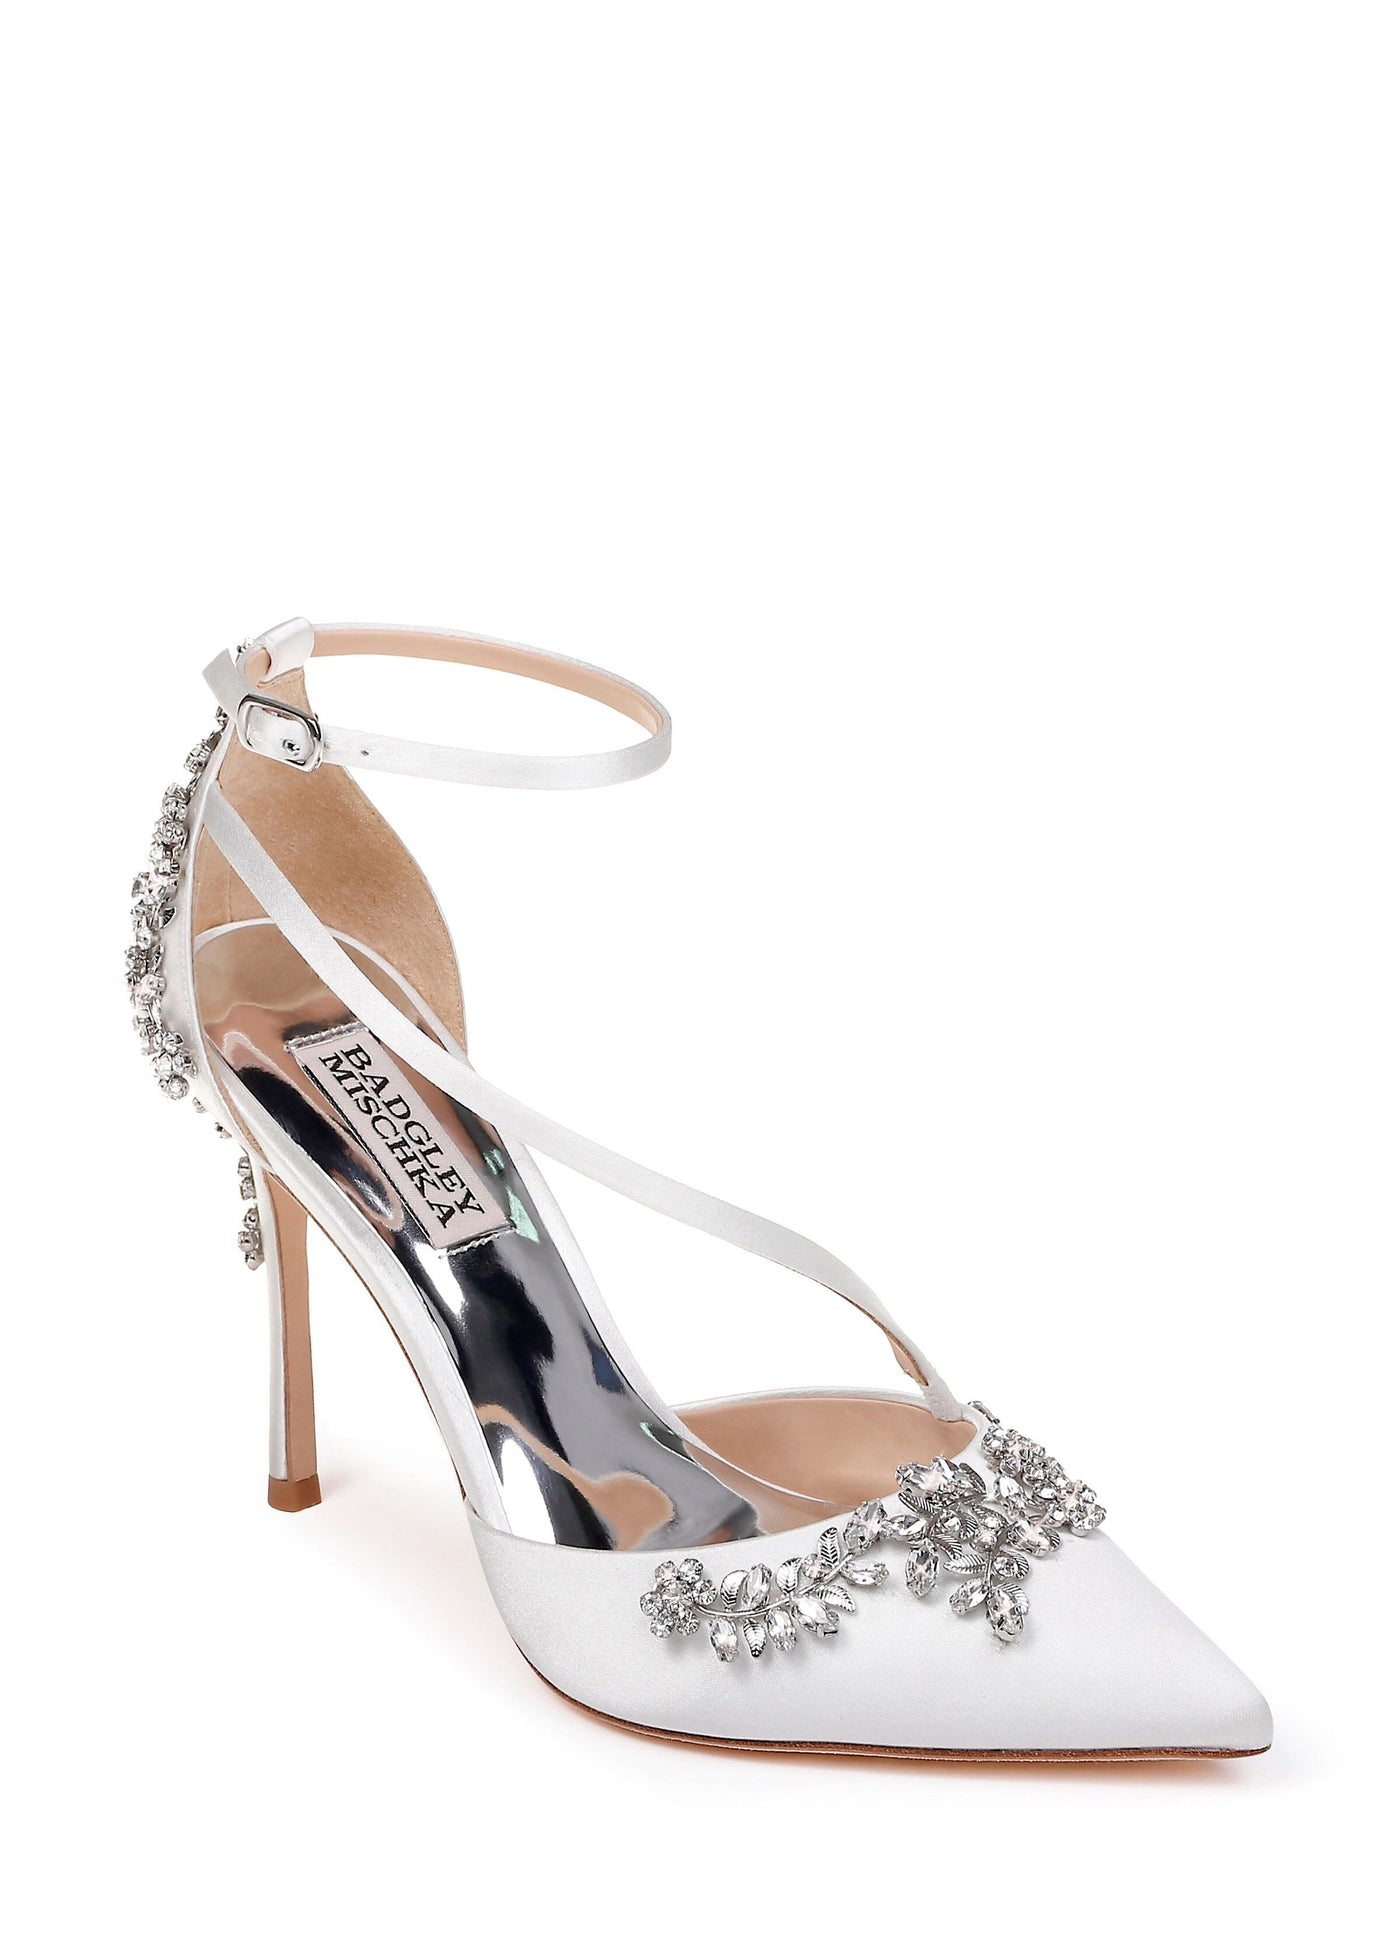 Faith - Last Pair, Shoes, Badgley Mischka - Eternal Bridal